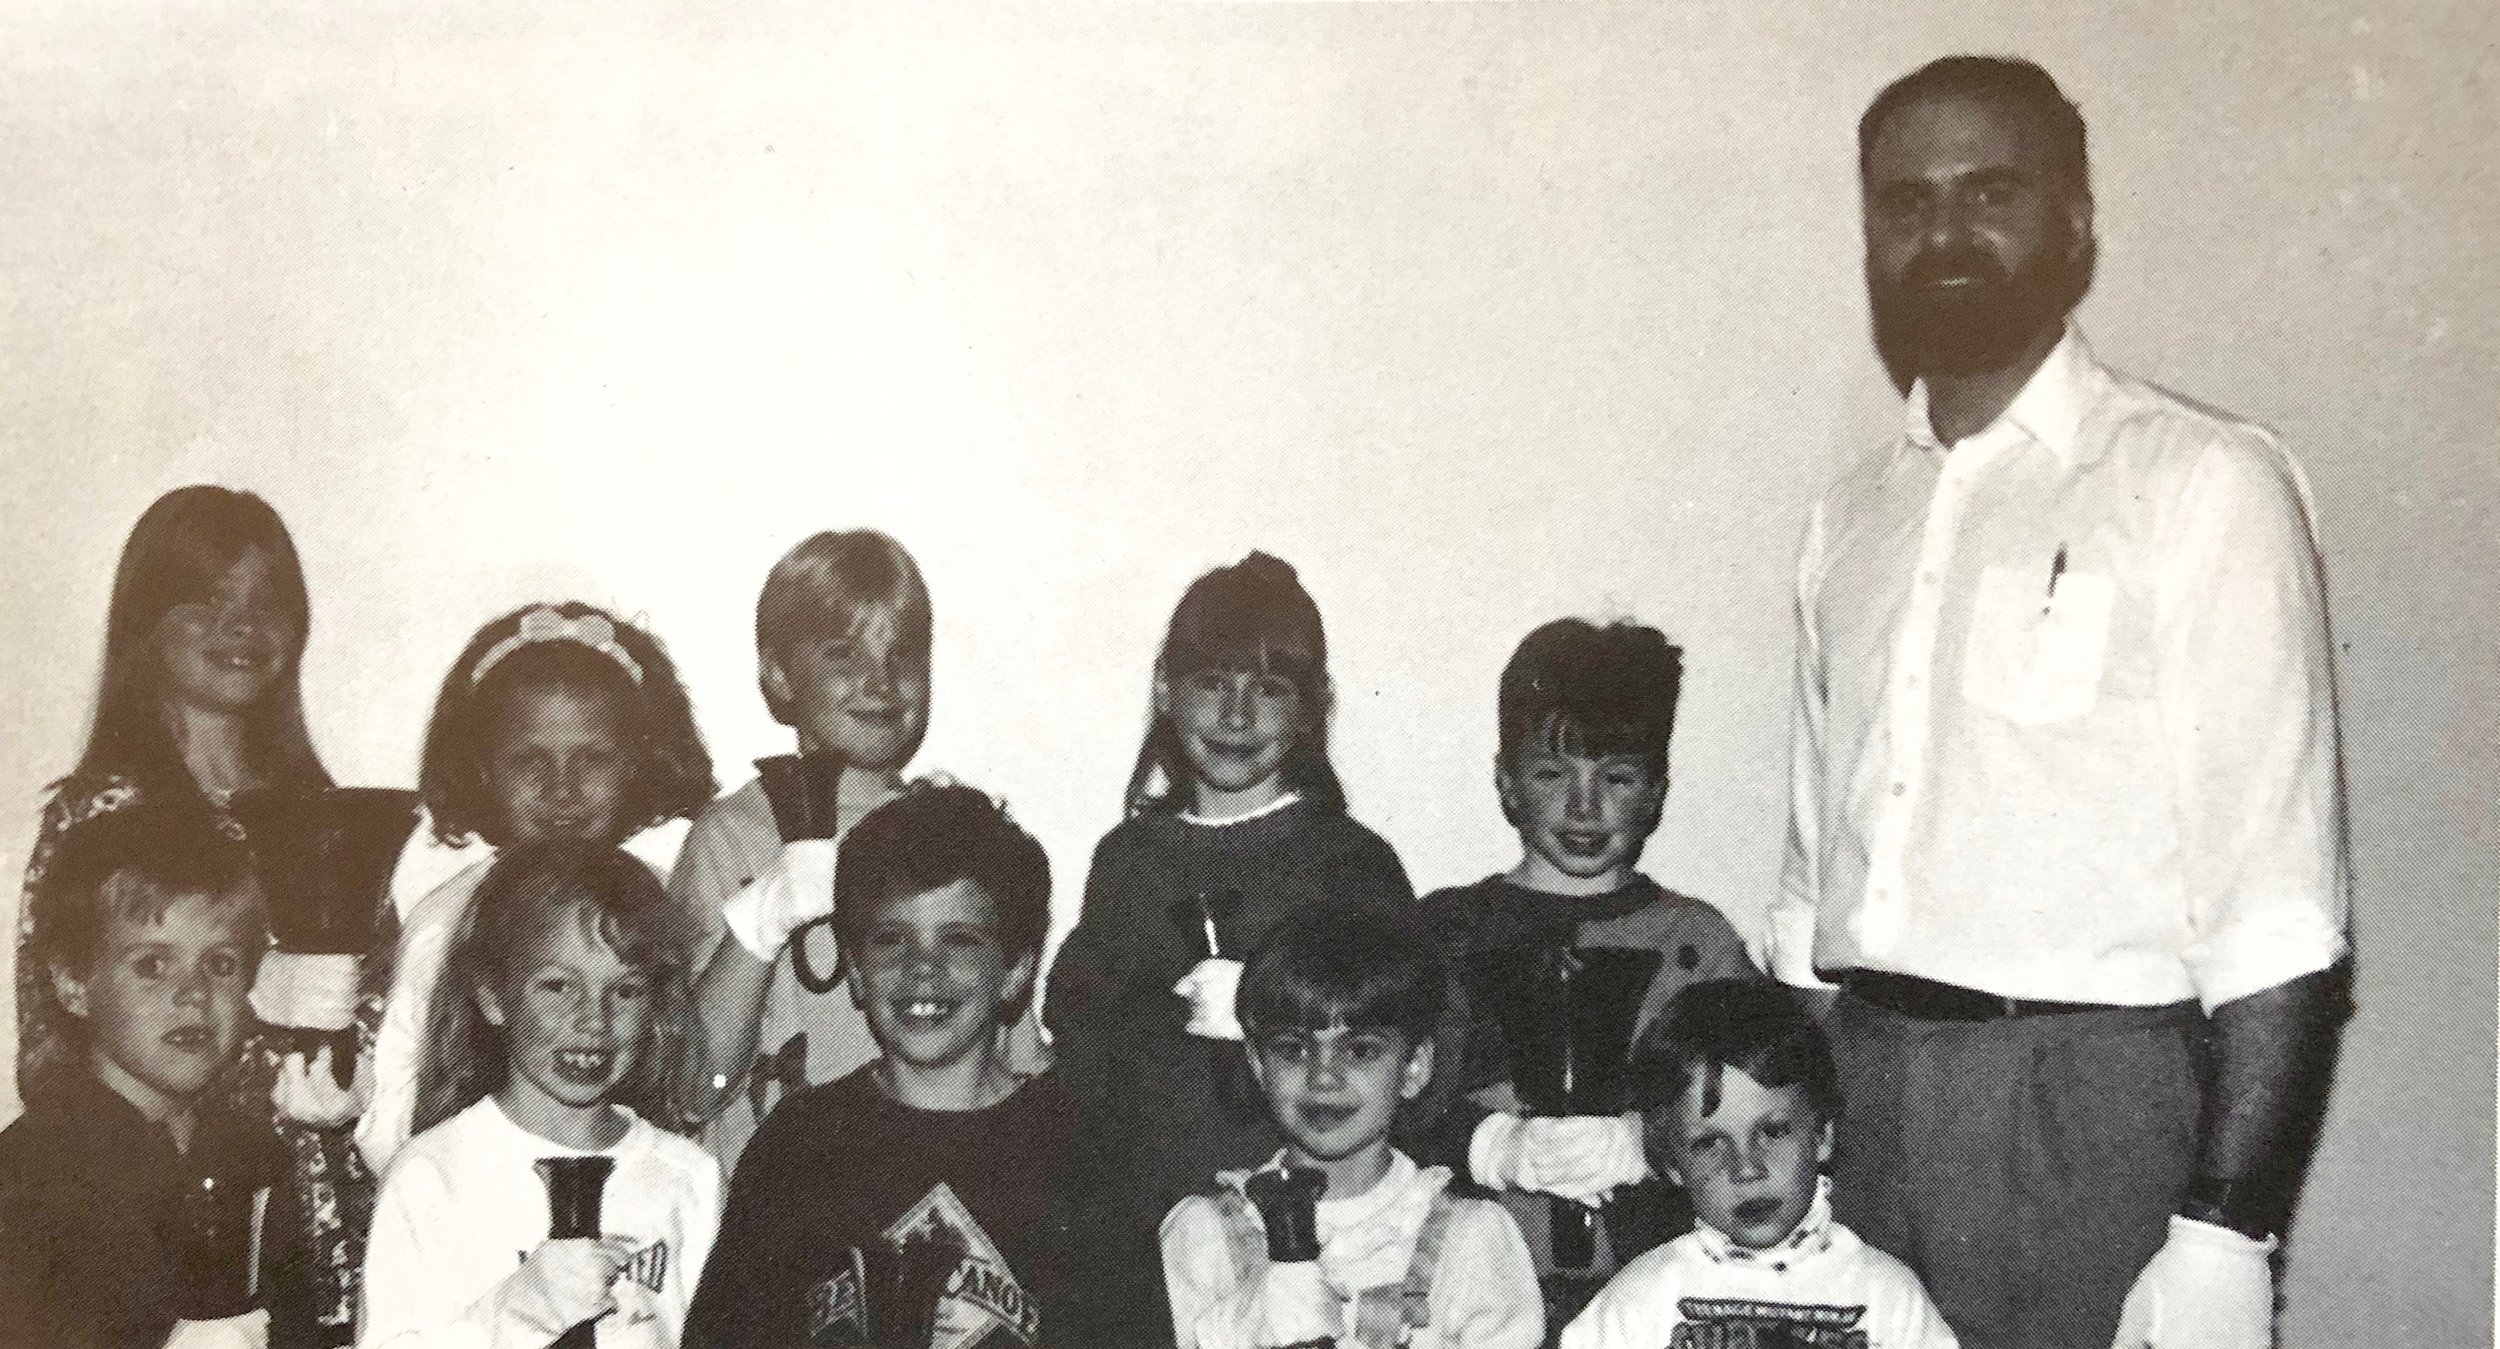 Hand Bells 1991 – Children's Group Back row L-R:  Amanda Boneschansker, Sheilina Fletcher, Lori Olson, Melissa Boneschansker, Andrew Knowlton Gordon Galbraith (Director)  Front row:  Ryan Pettit, Nadine Fletcher, Nathan Parkhouse, Stephanie Galbraith, Justin Fletcher